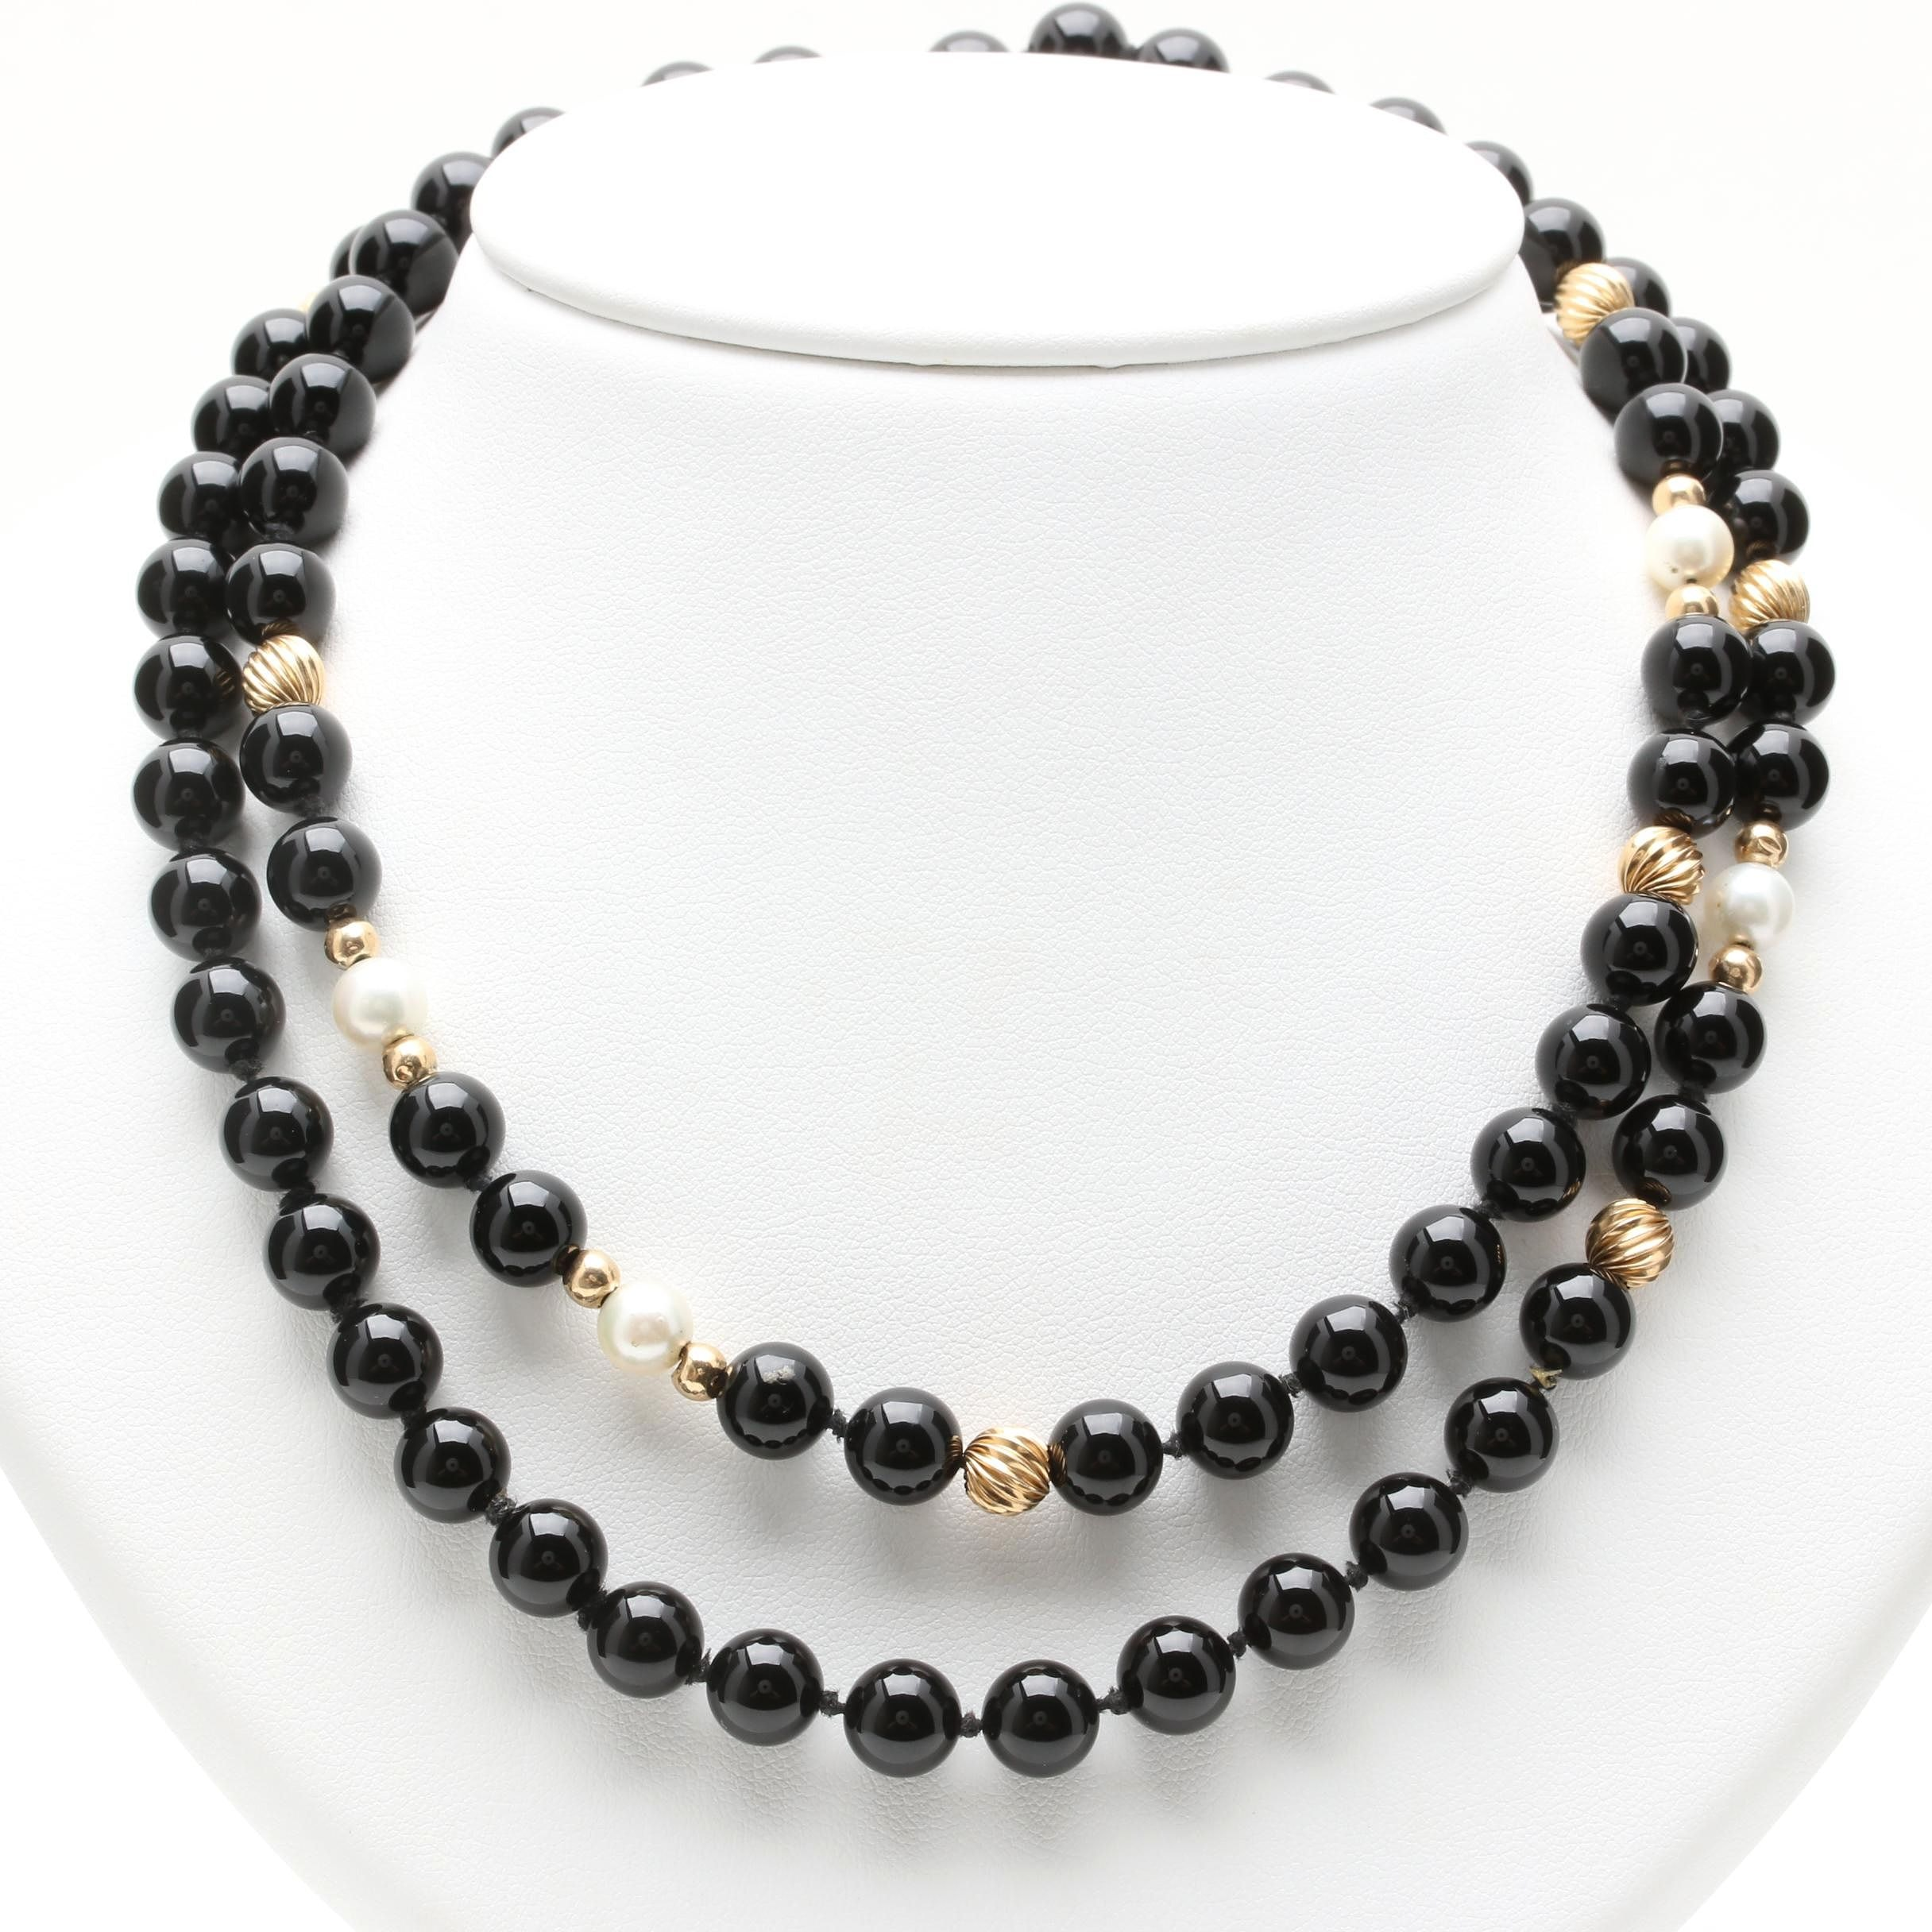 14K Yellow Gold Black Onyx and Cultured Pearl Beaded Necklace